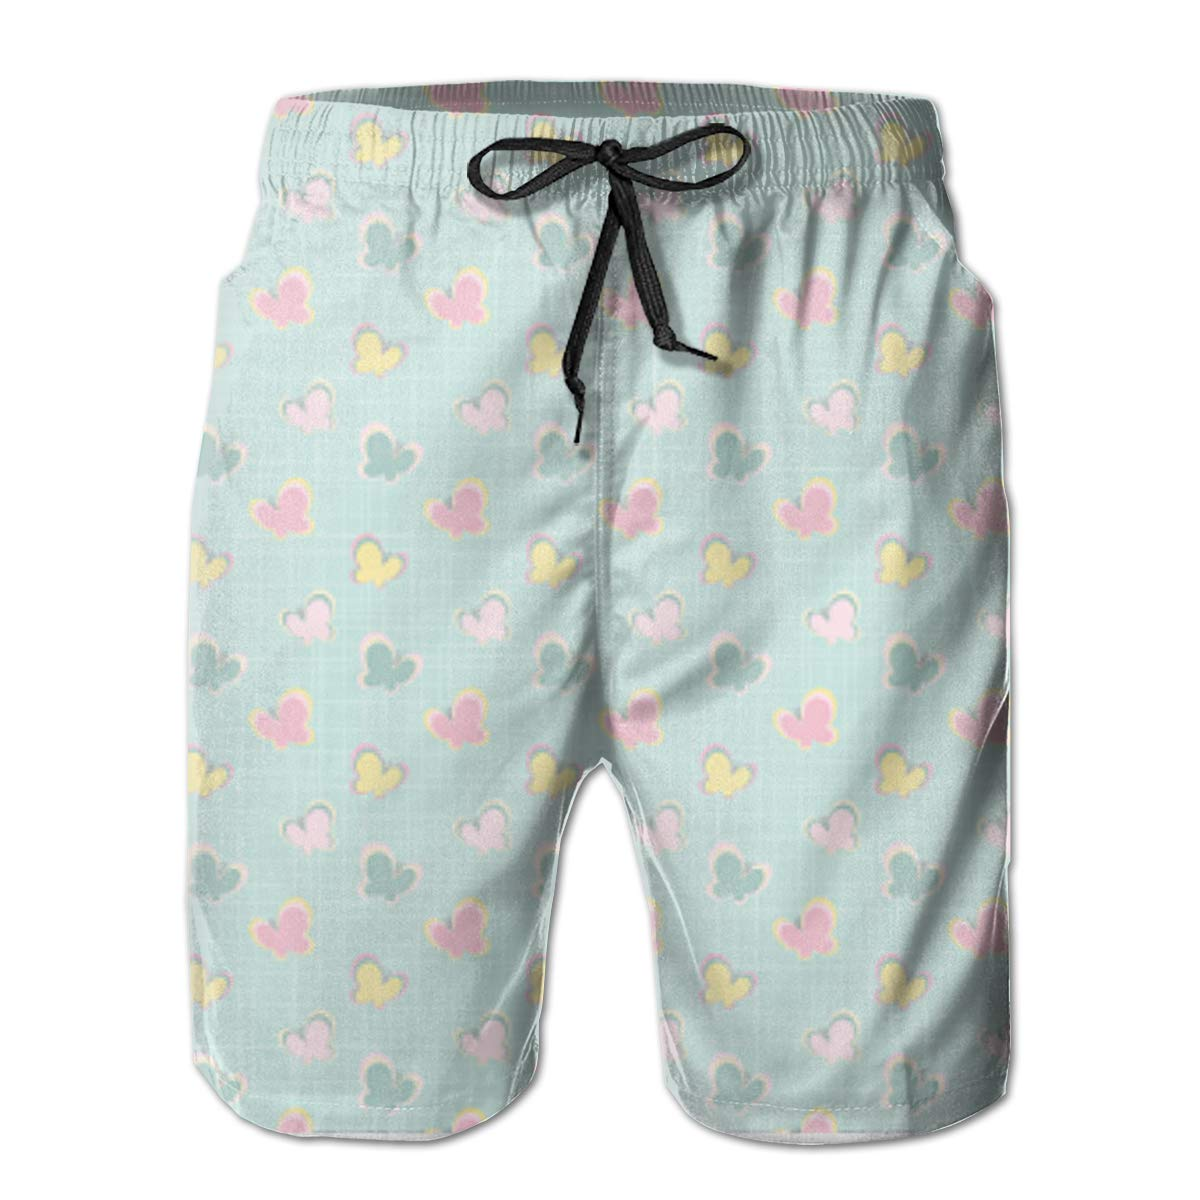 HUIHSWSNAZZPrinted ImagesFashionGraphic Mens Beach Shorts for The Broad YouthXXL